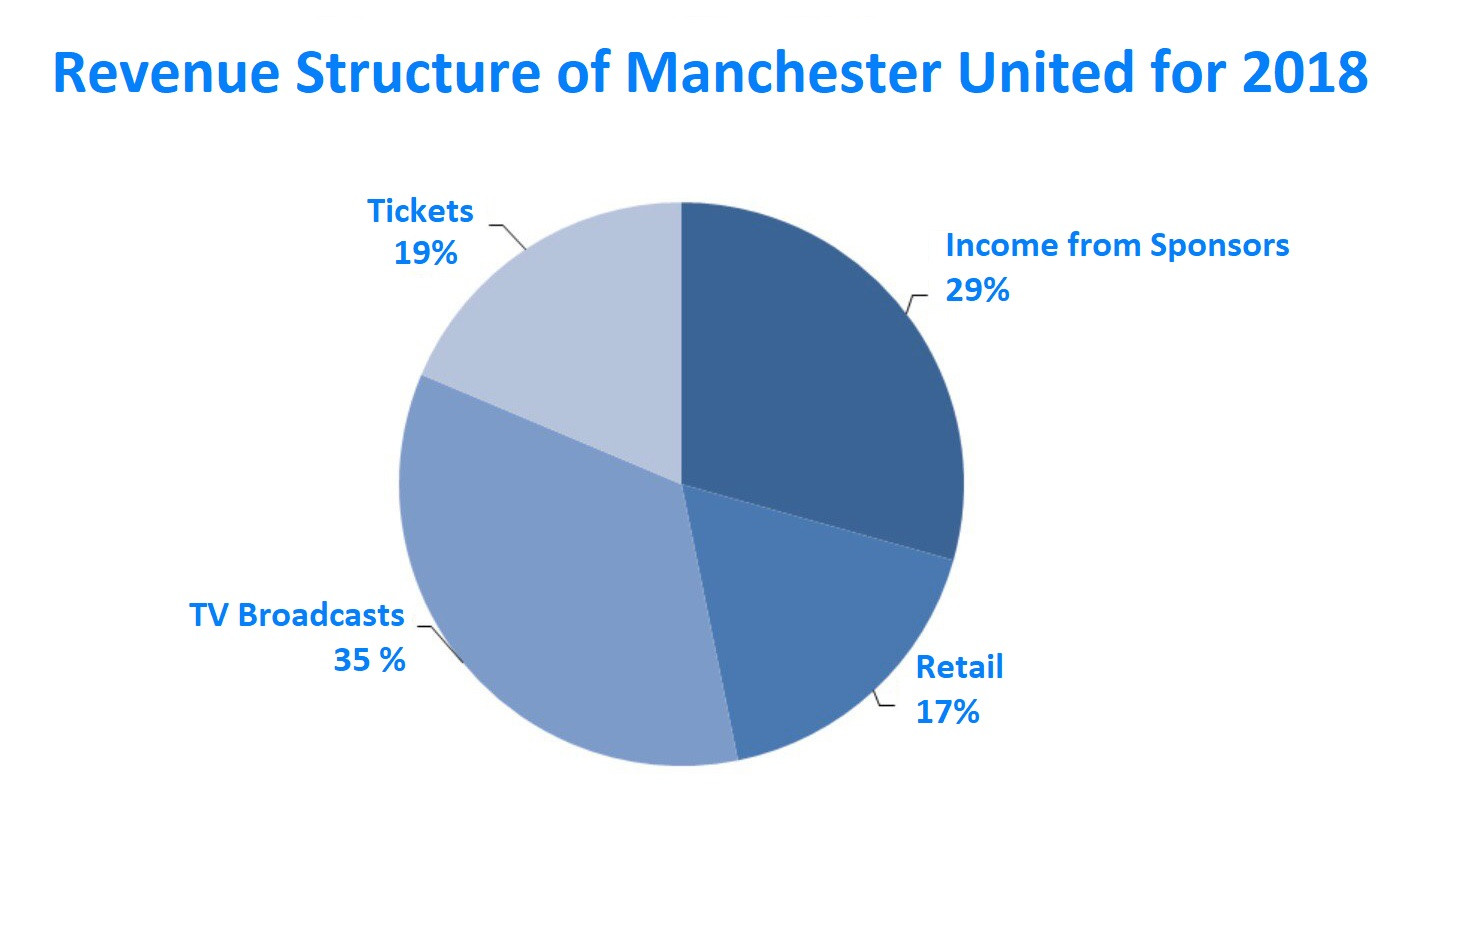 Revenue of Manchester United for 2018